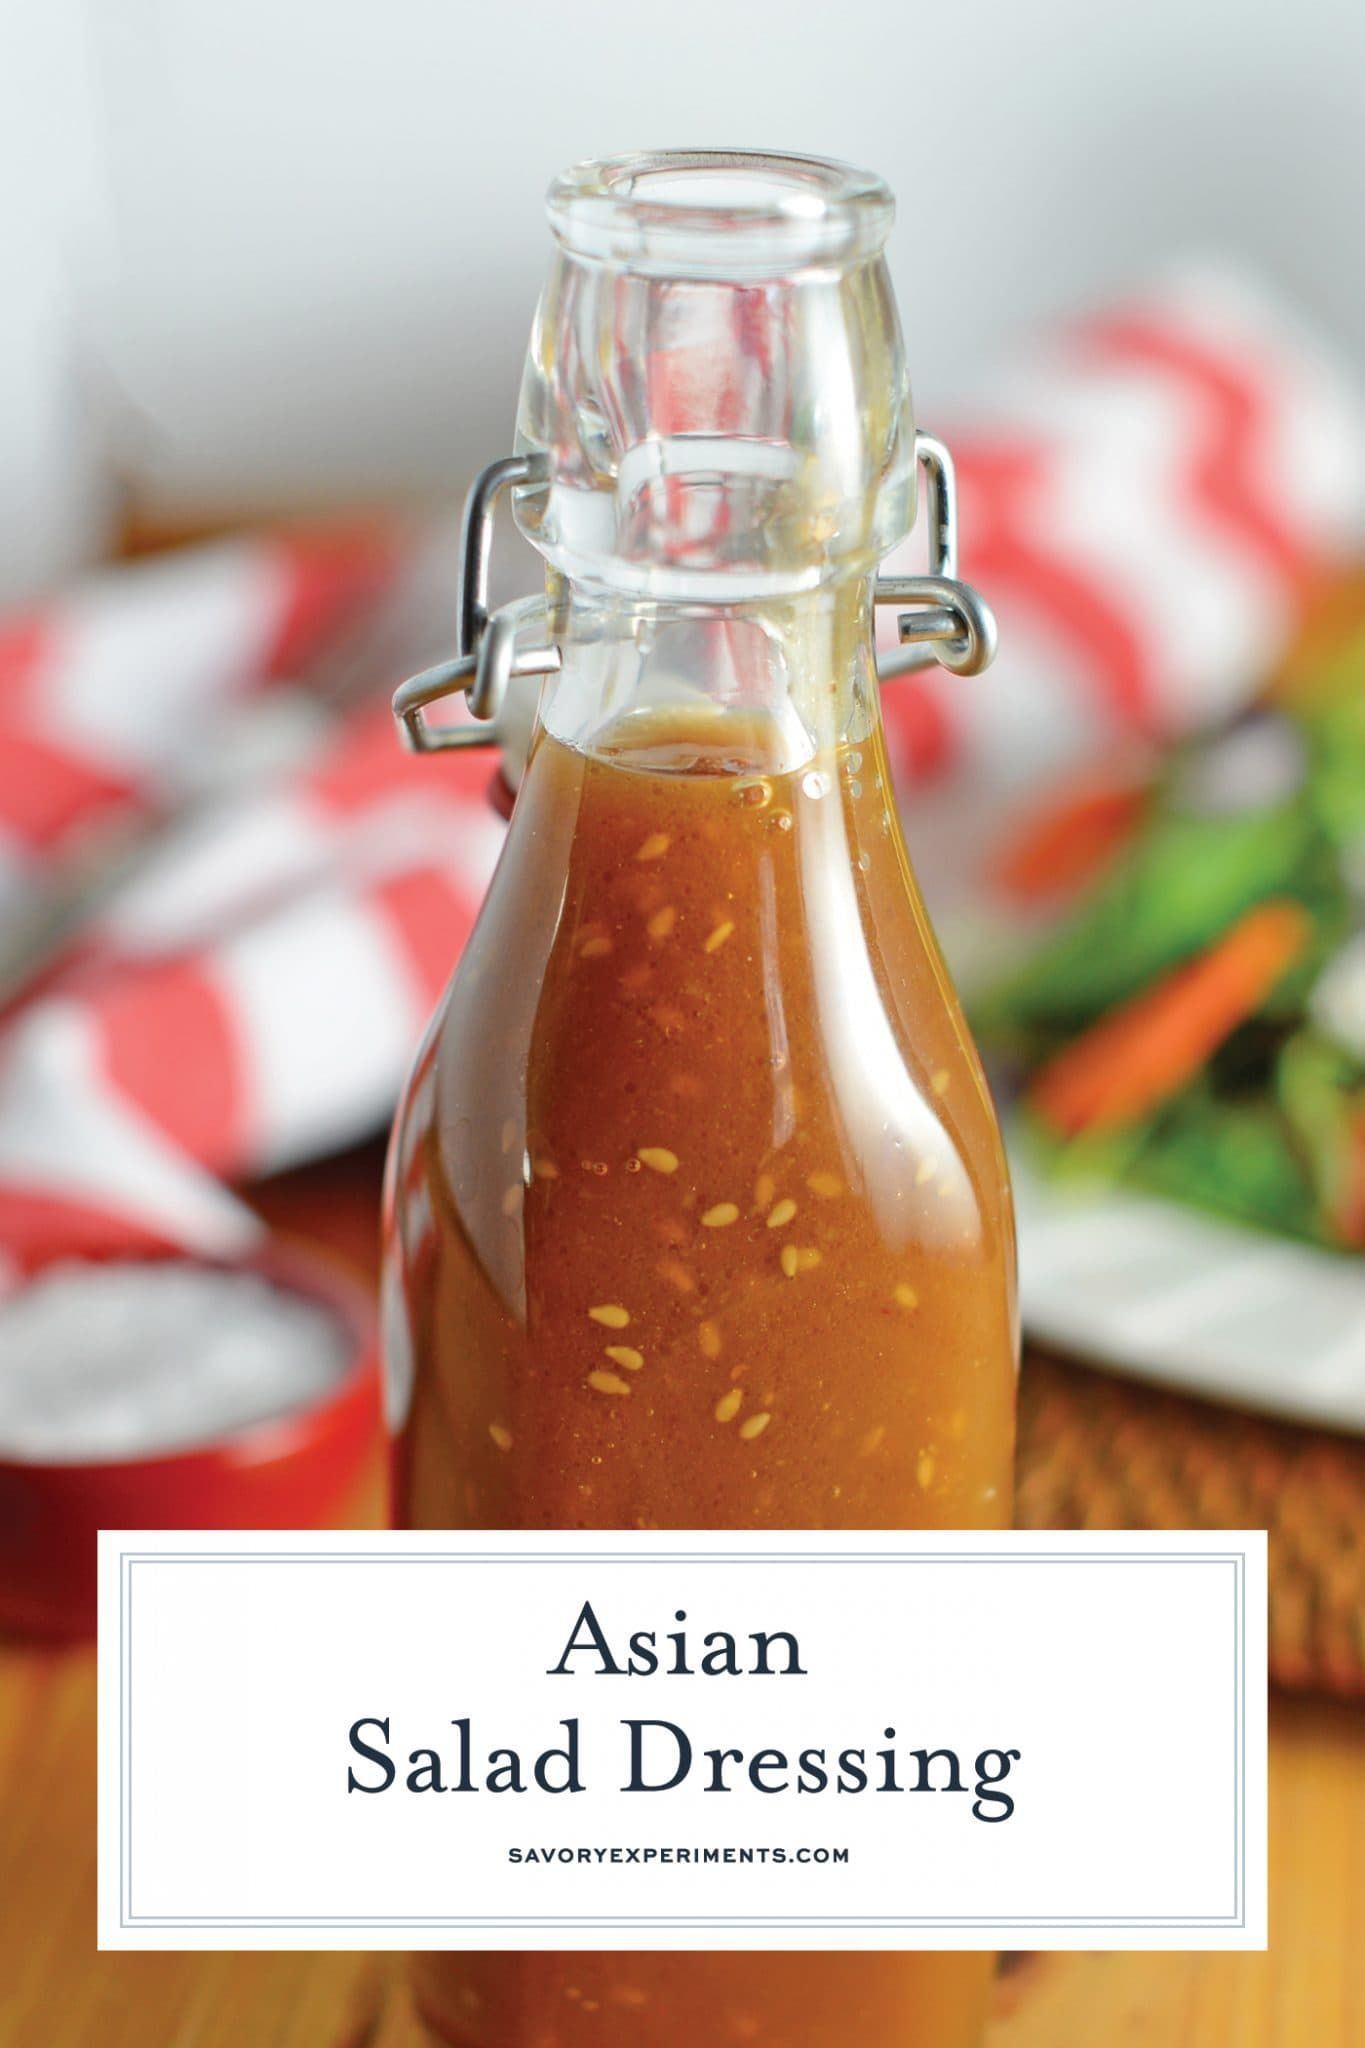 Ginger Asian Salad Dressing- A Japanese Steakhouse Favorite -  This Asian Salad Dressing is a great copycat recipe for what you get at Japanese steakhouses like B - #asian #dressing #favorite #ginger #japanese #salad #saladdressinghealthy #saladdressinghomemade #saladdressingrecipes #saladdressingrecipesbalsamic #saladdressingrecipeseasy #saladdressingrecipeshealthy #saladdressingrecipeshomemade #saladdressingrecipesvinaigrette #steakhouse